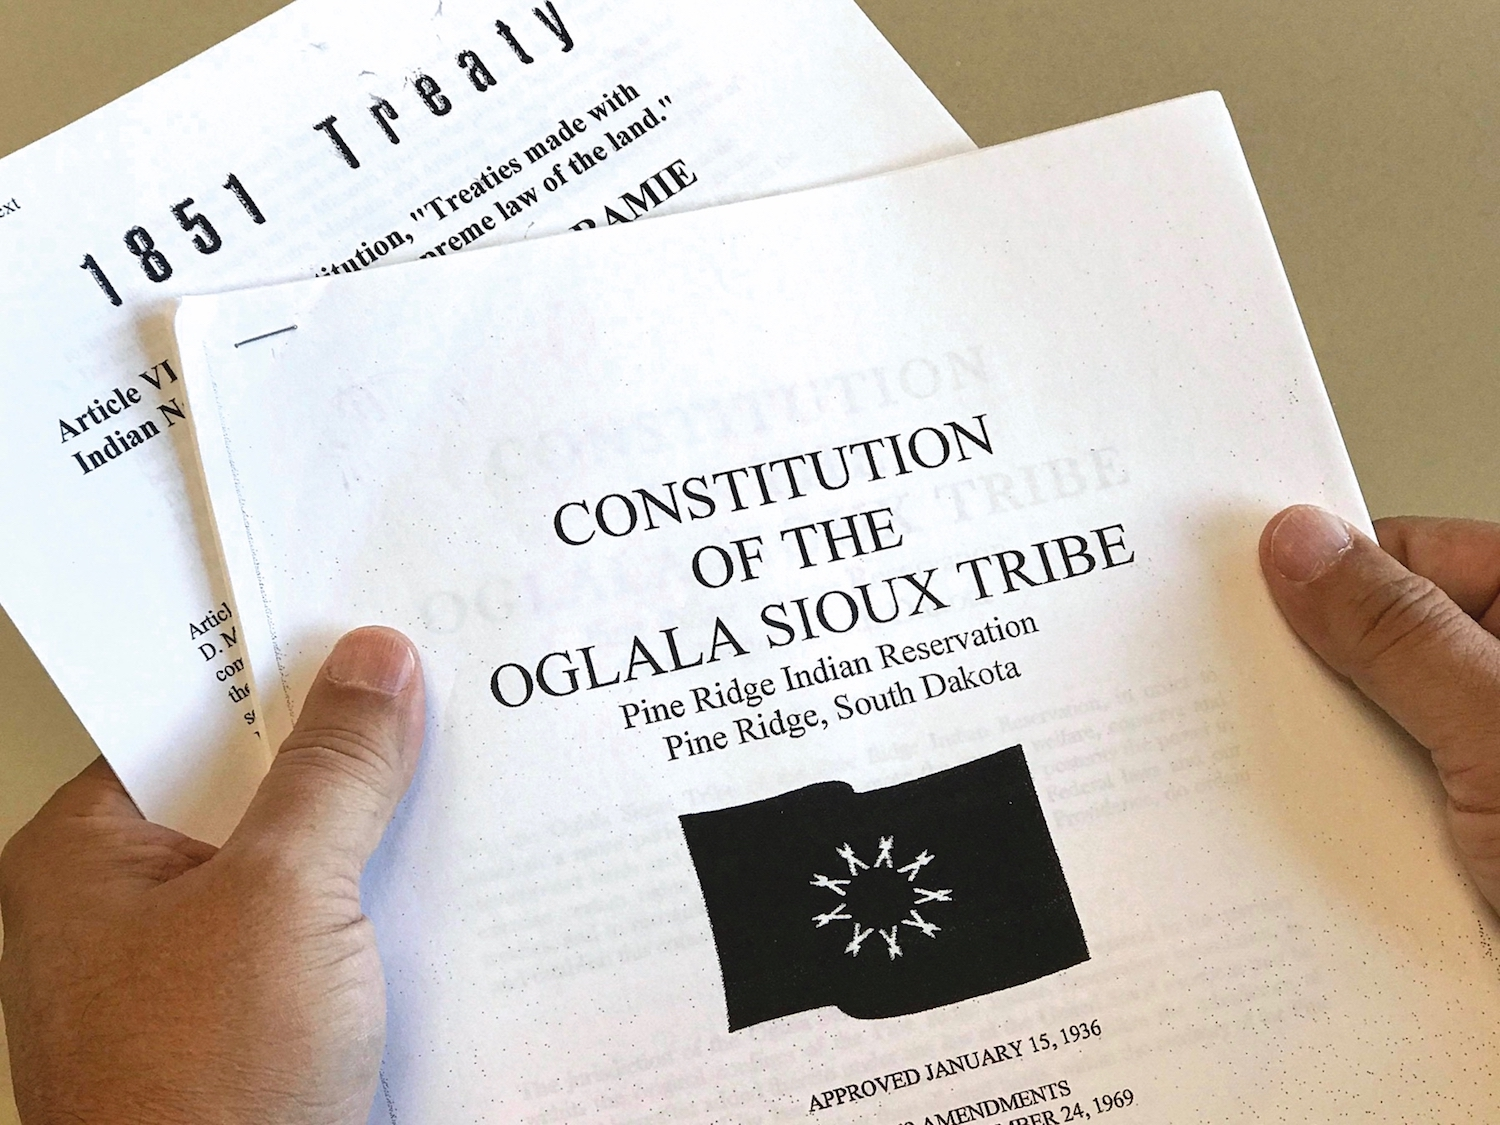 Ivan Star Comes Out: Making the tribal constitution work for our people